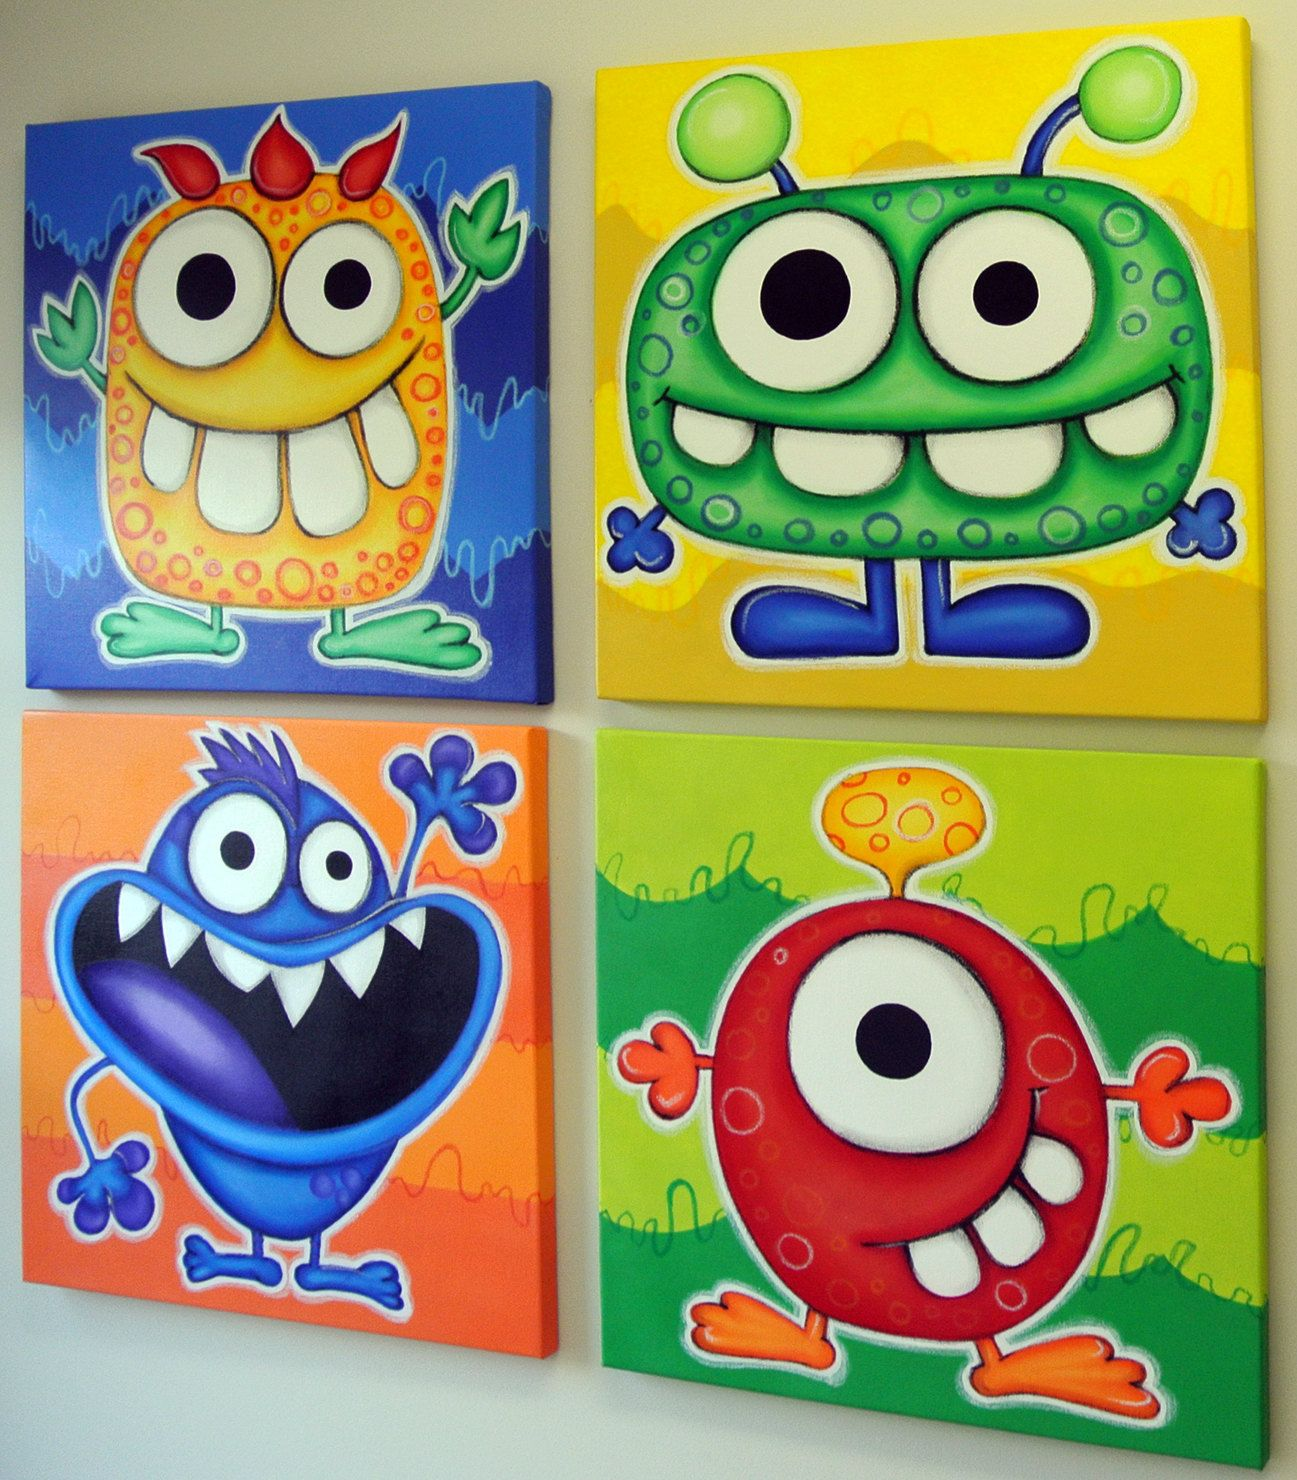 rED mONSTER 12x12 original painting on canvas, for